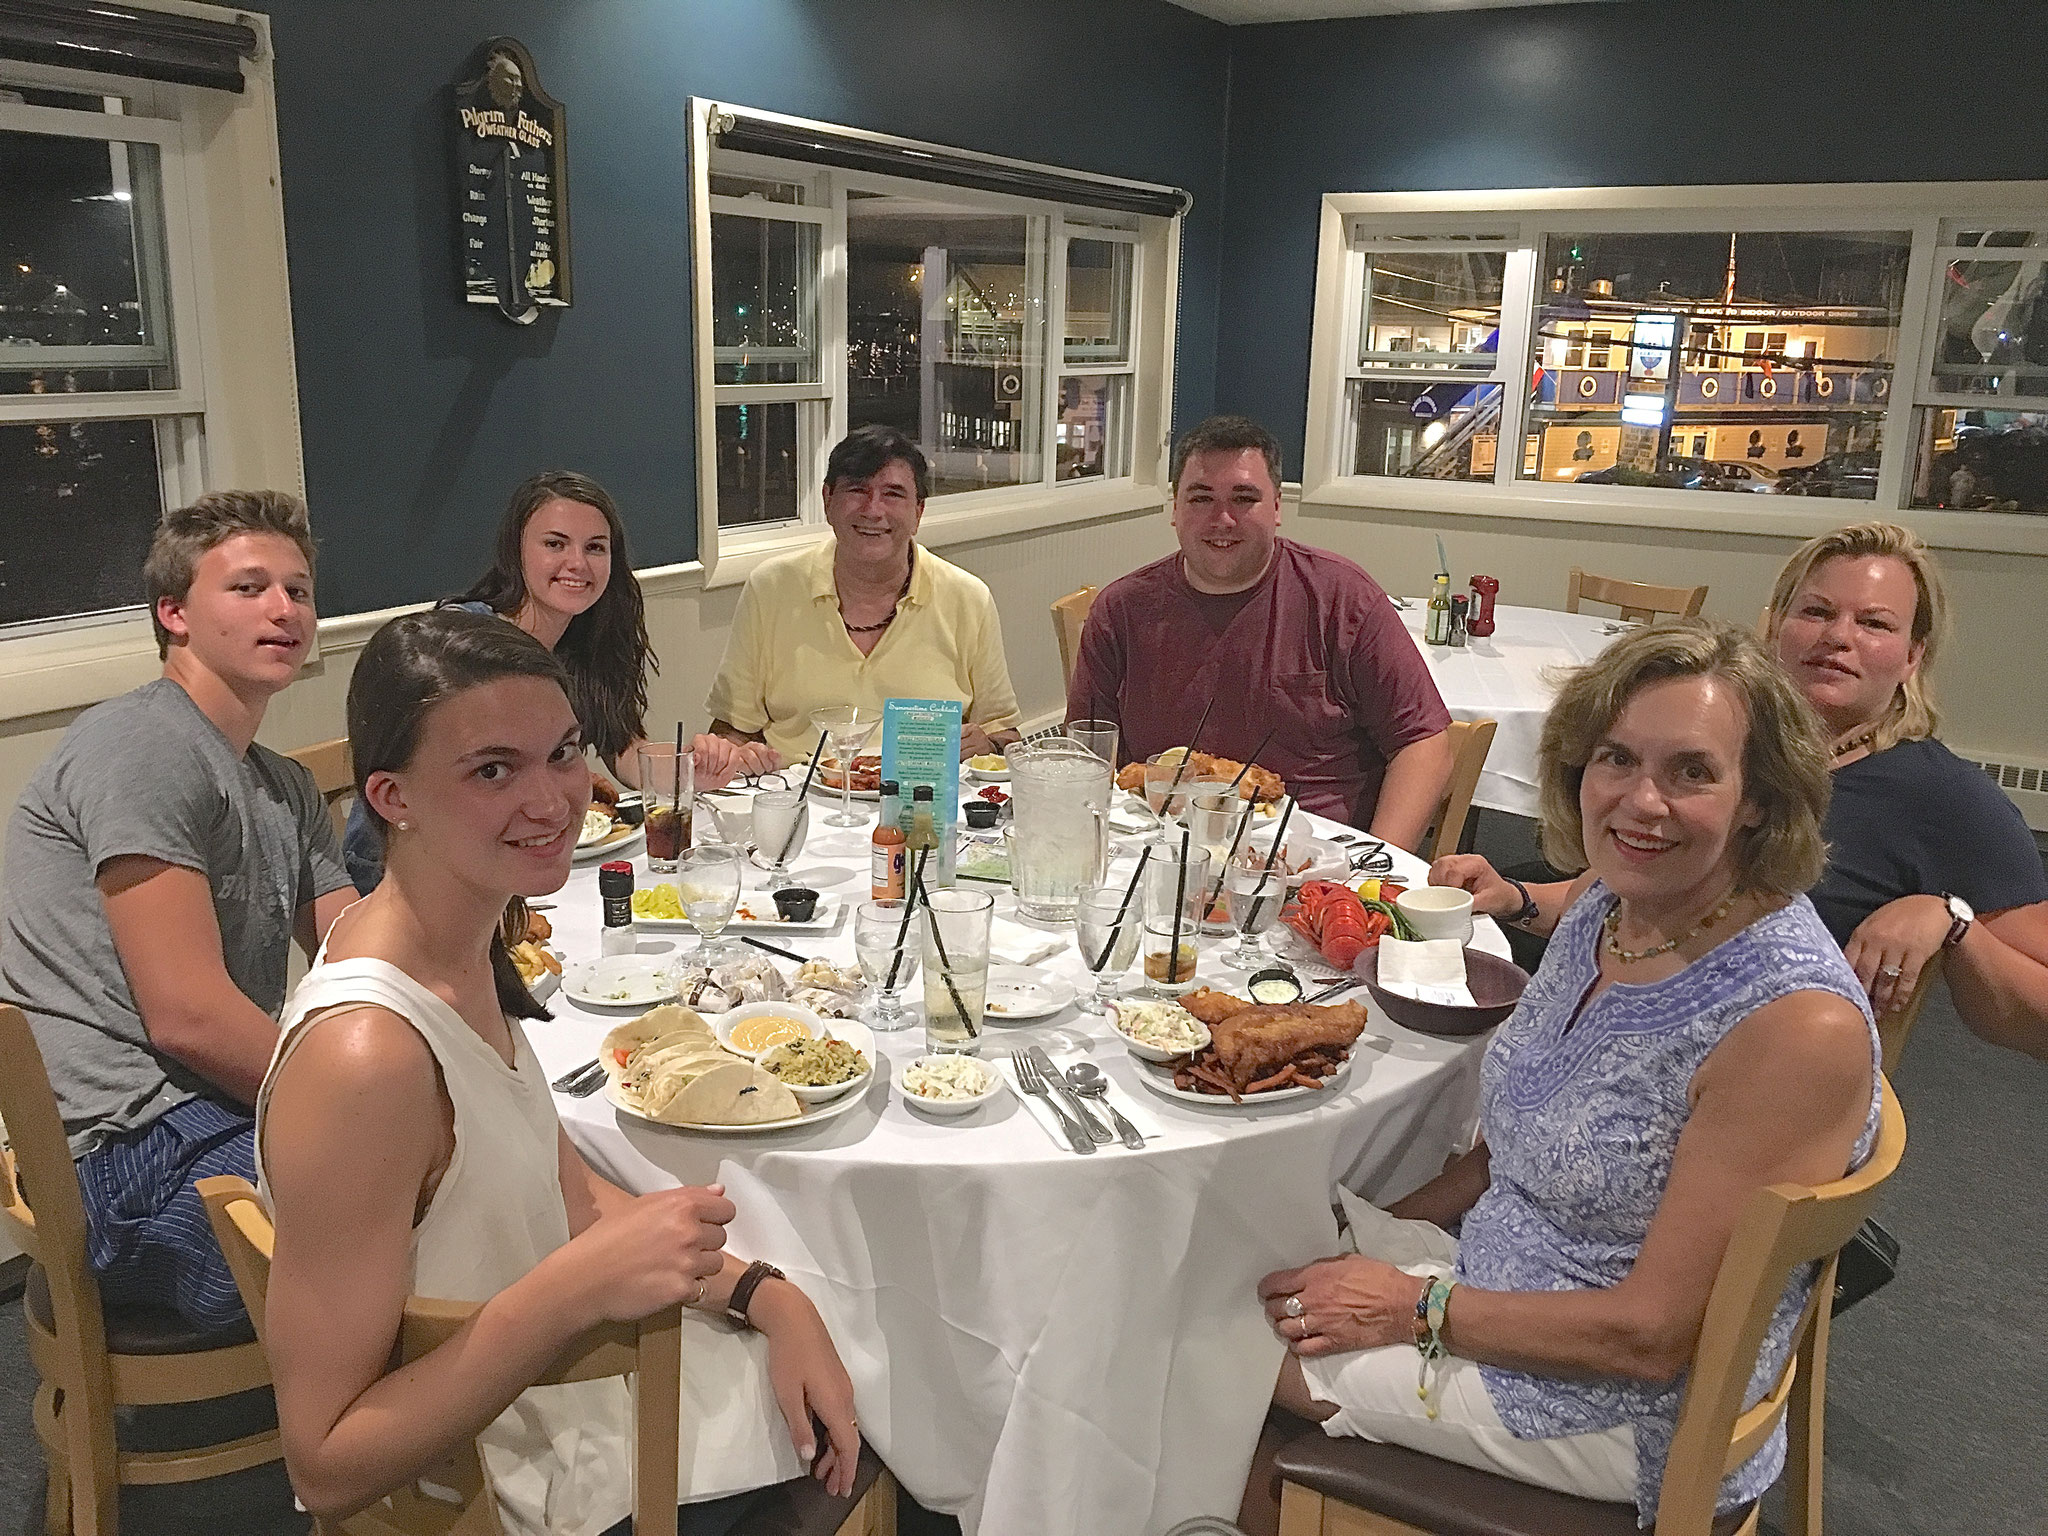 Ellie, Jack, Kate, John, Greg, Celeste, & Lorraine   George's, Galilee, RI Aug. 27, 2016